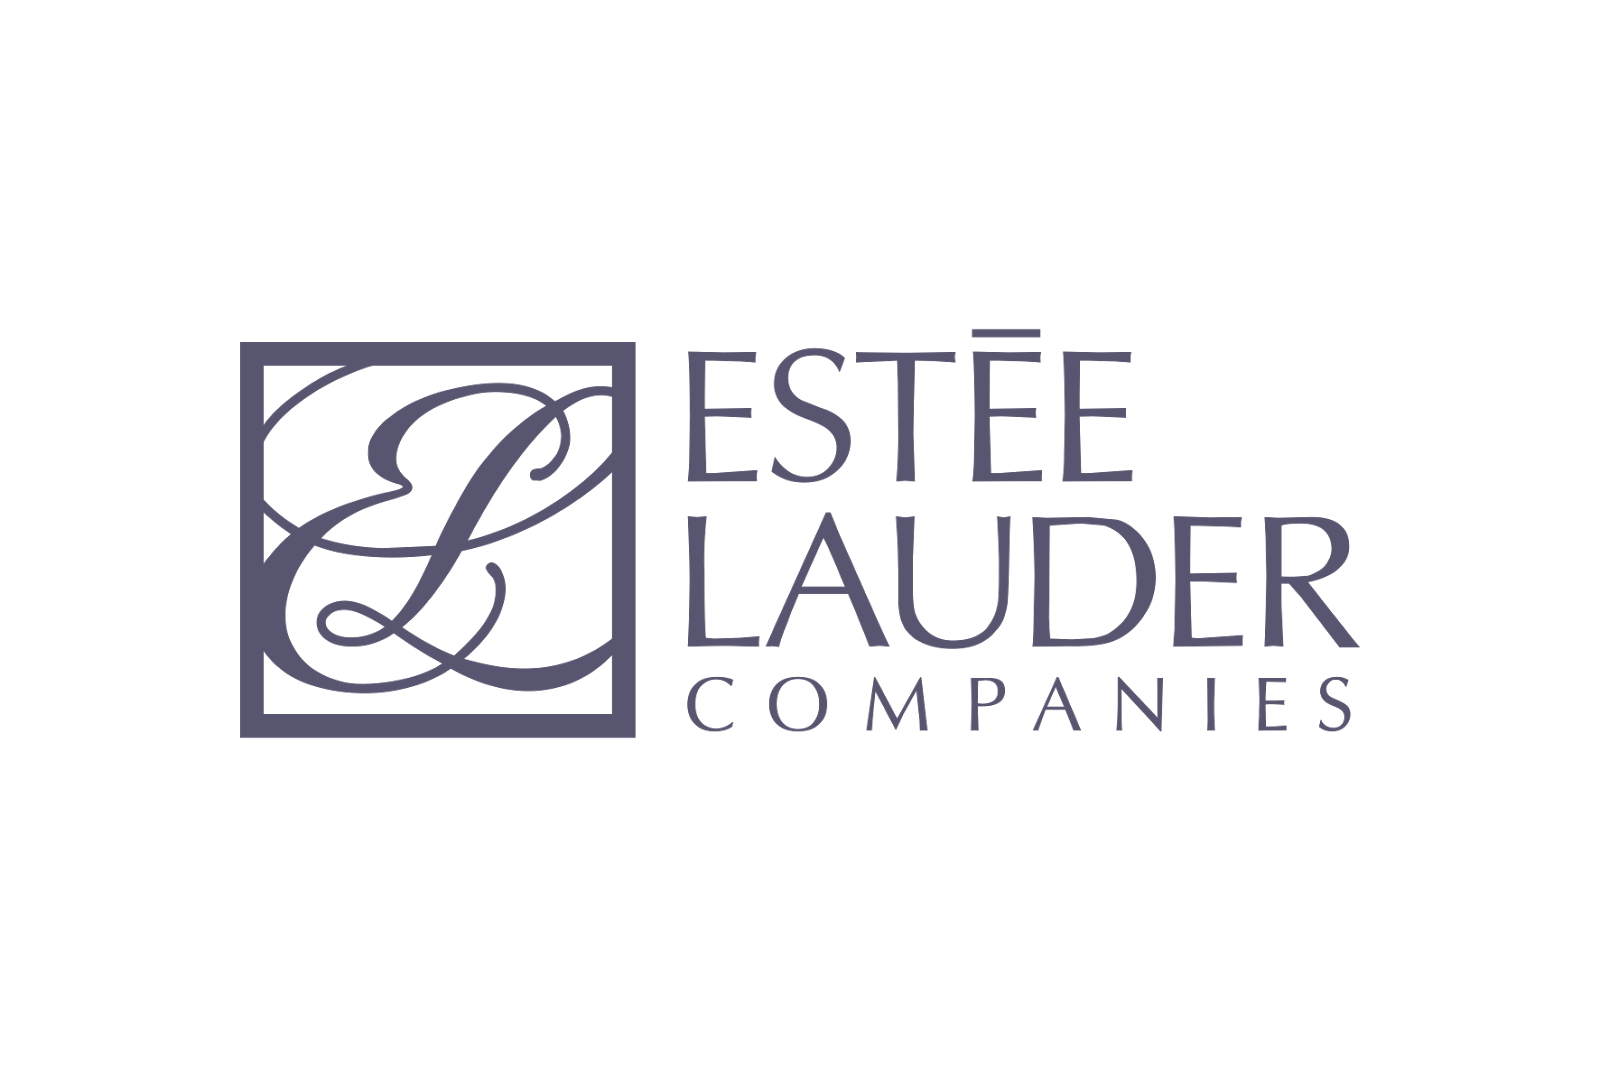 estee lauder management strategy Business overview of estee lauder she implemented a unique marketing strategy which would come to define lauder's these include strong management.